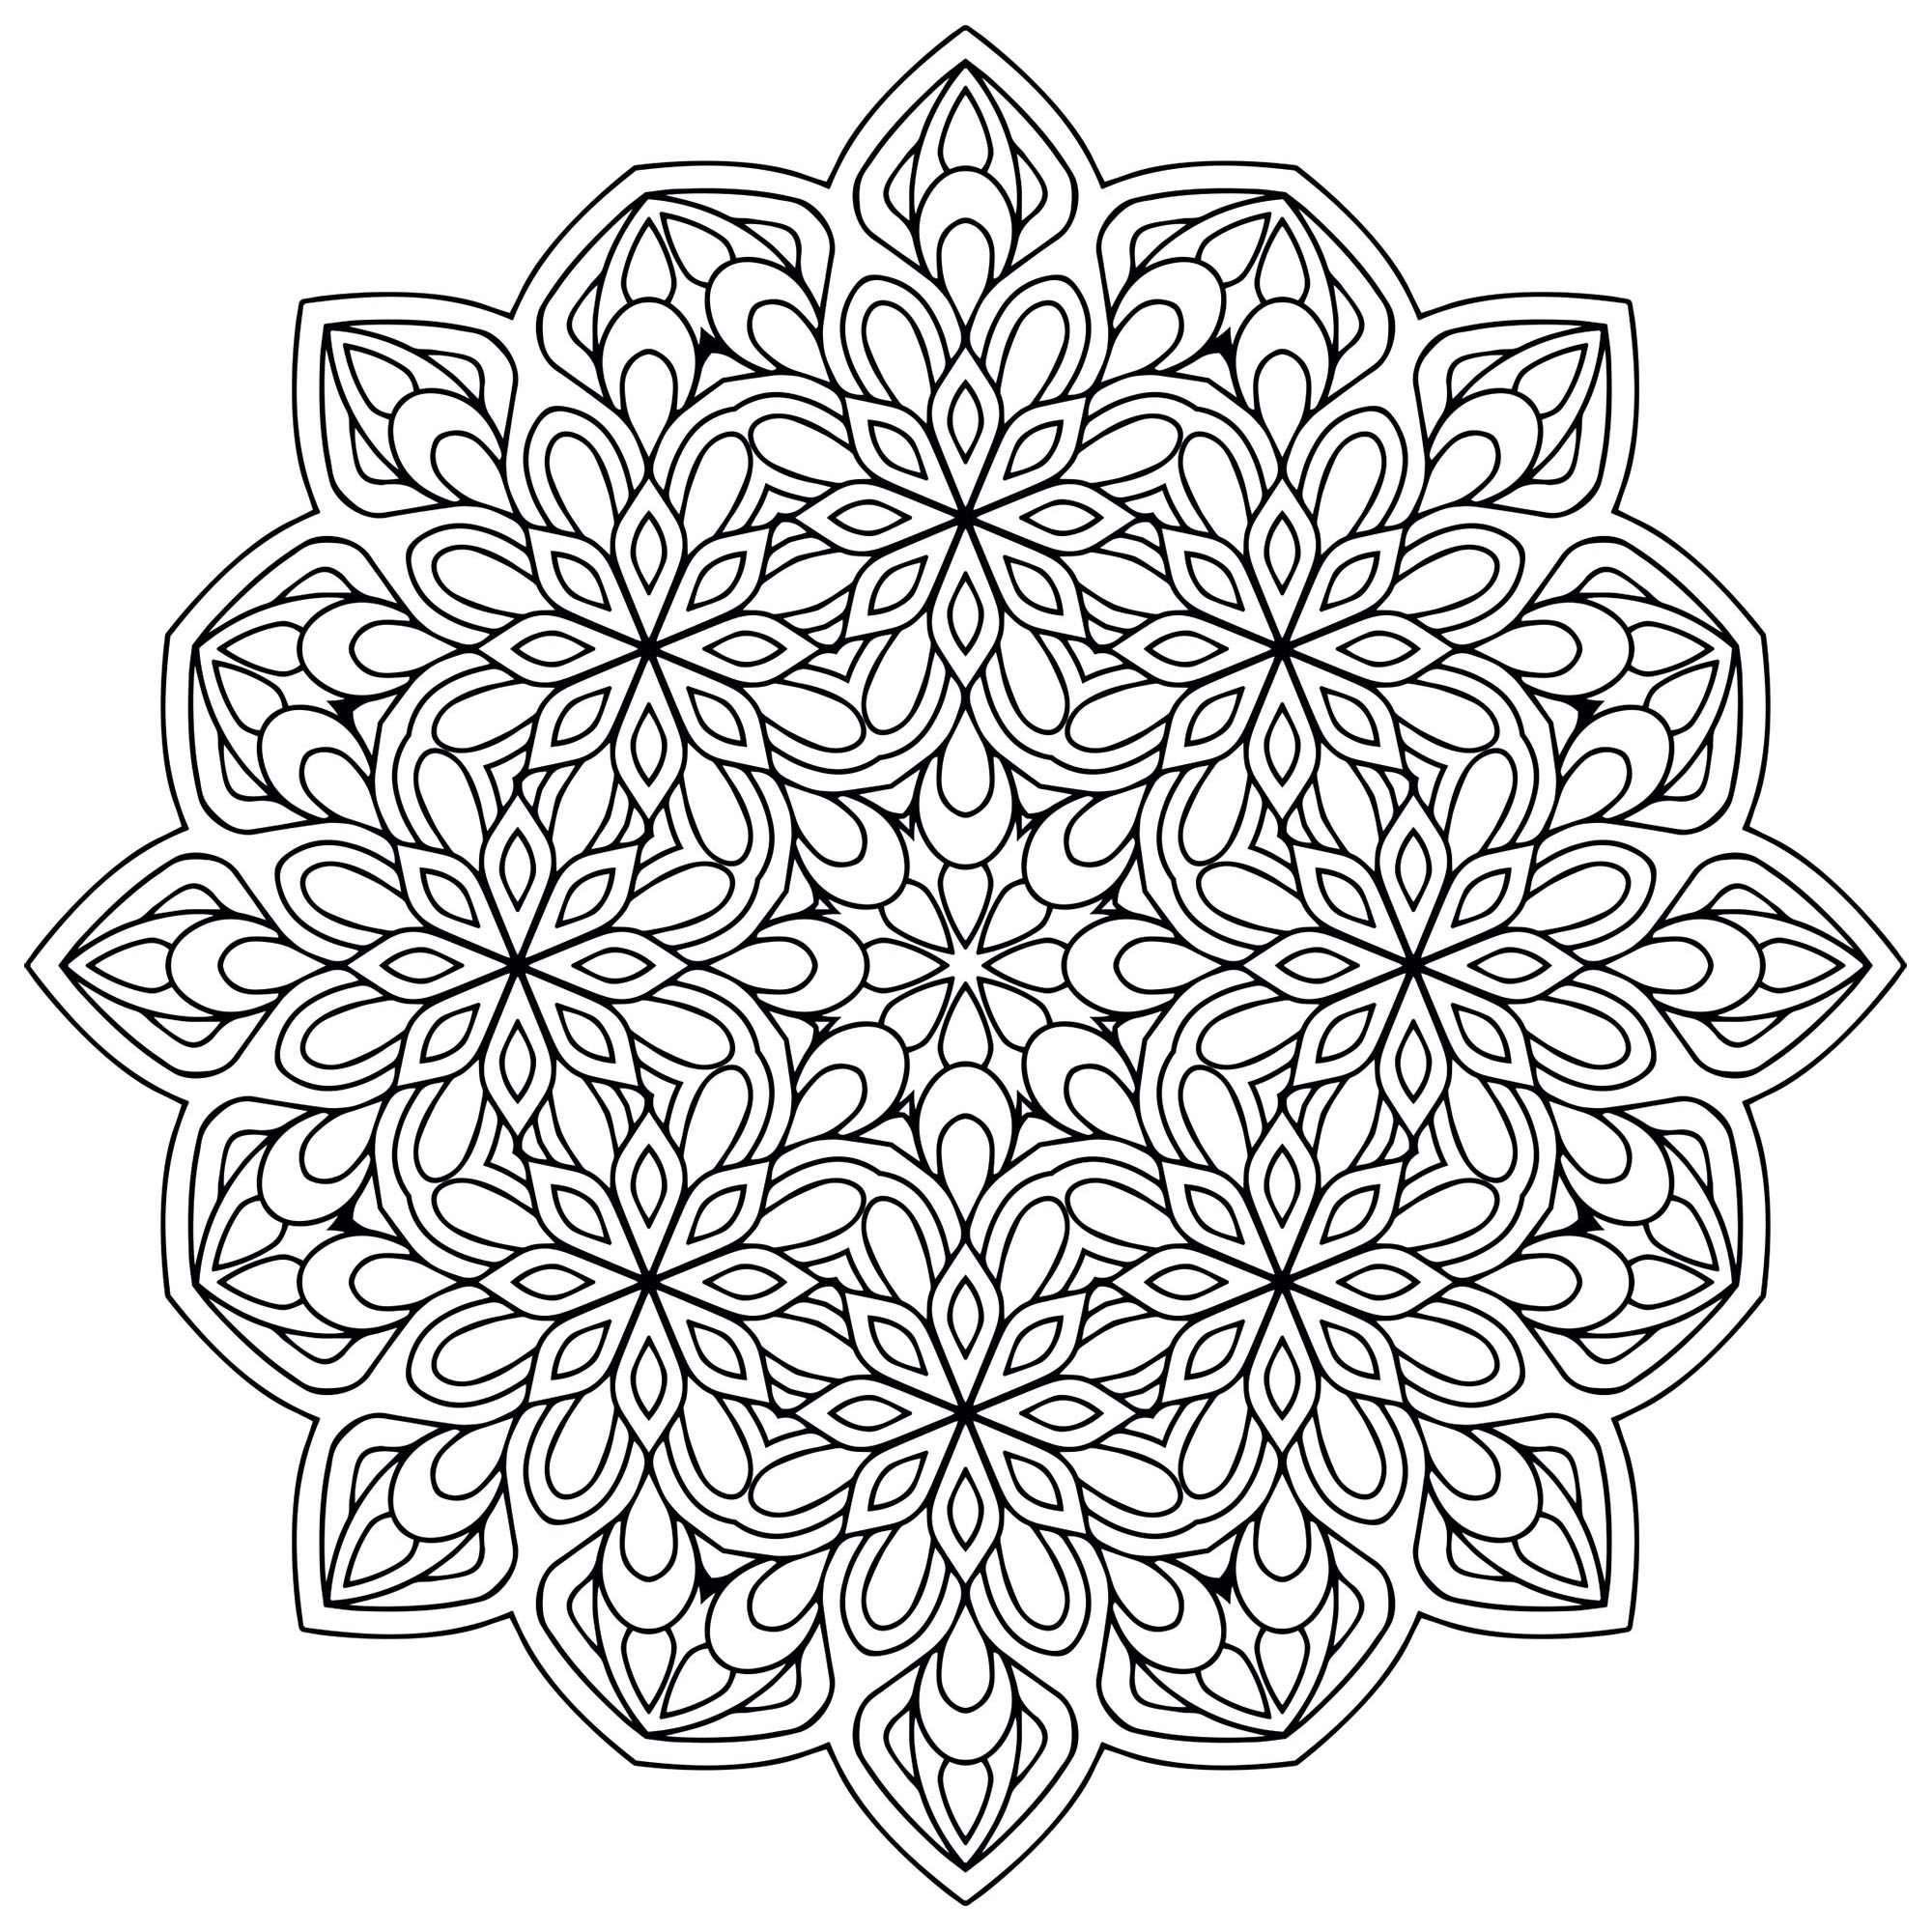 Prepare your most beautiful shades of green and other colors to color this beautiful and exclusive coloring page, special for lovers of Mandalas and Nature !